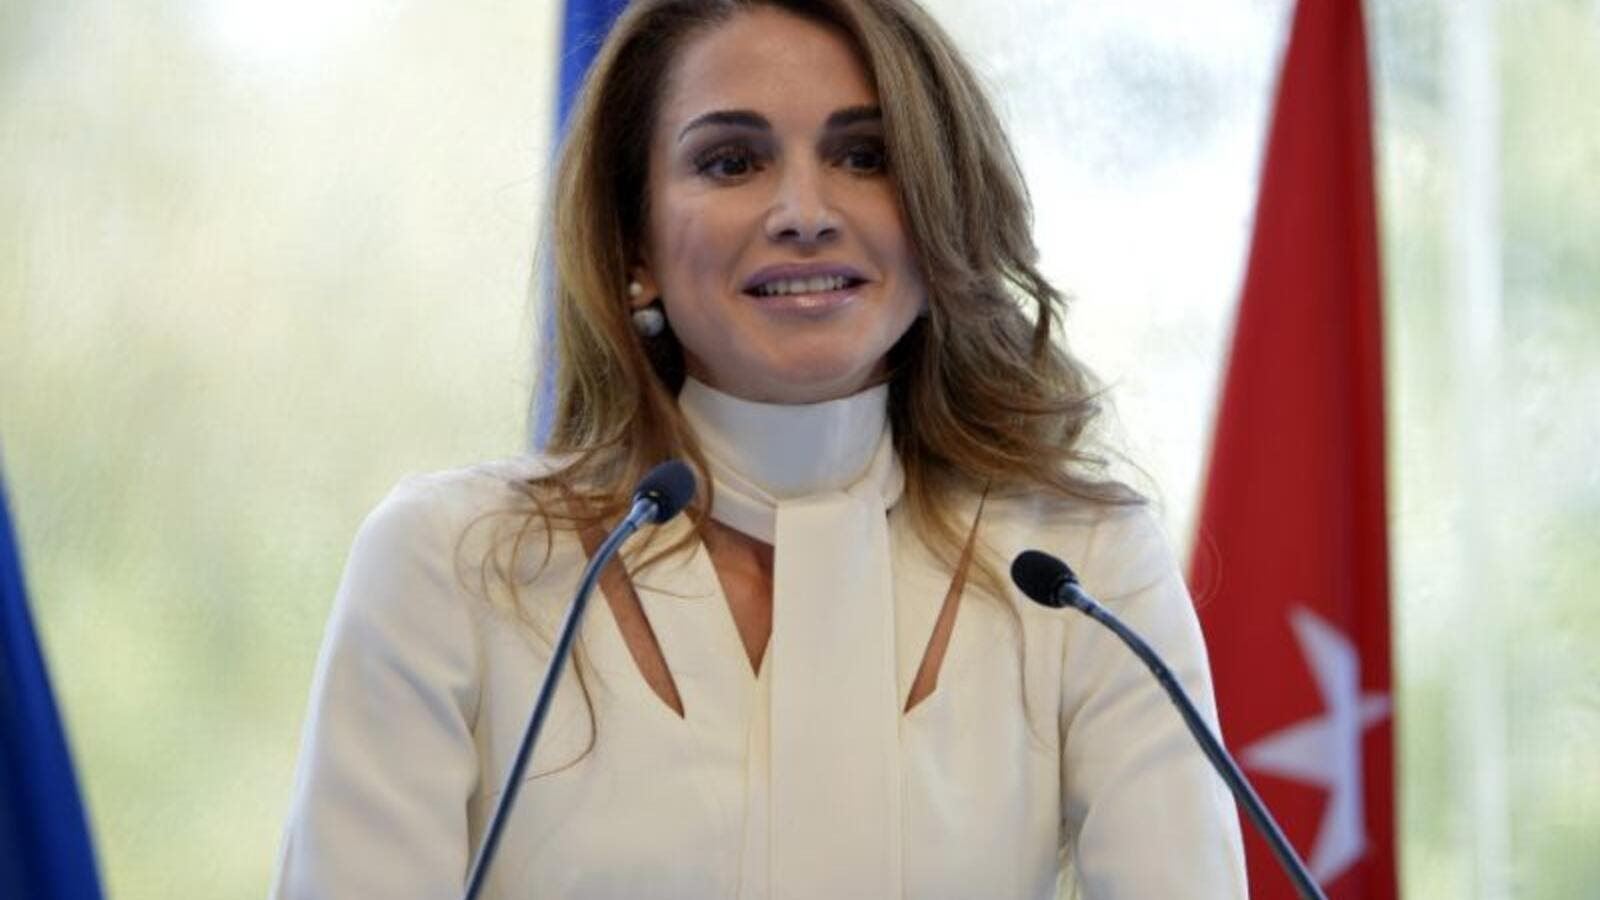 Queen Rania of Jordan delivers her speech at the Medef Summer Conference. (AFP Photo/Eric Piermont)